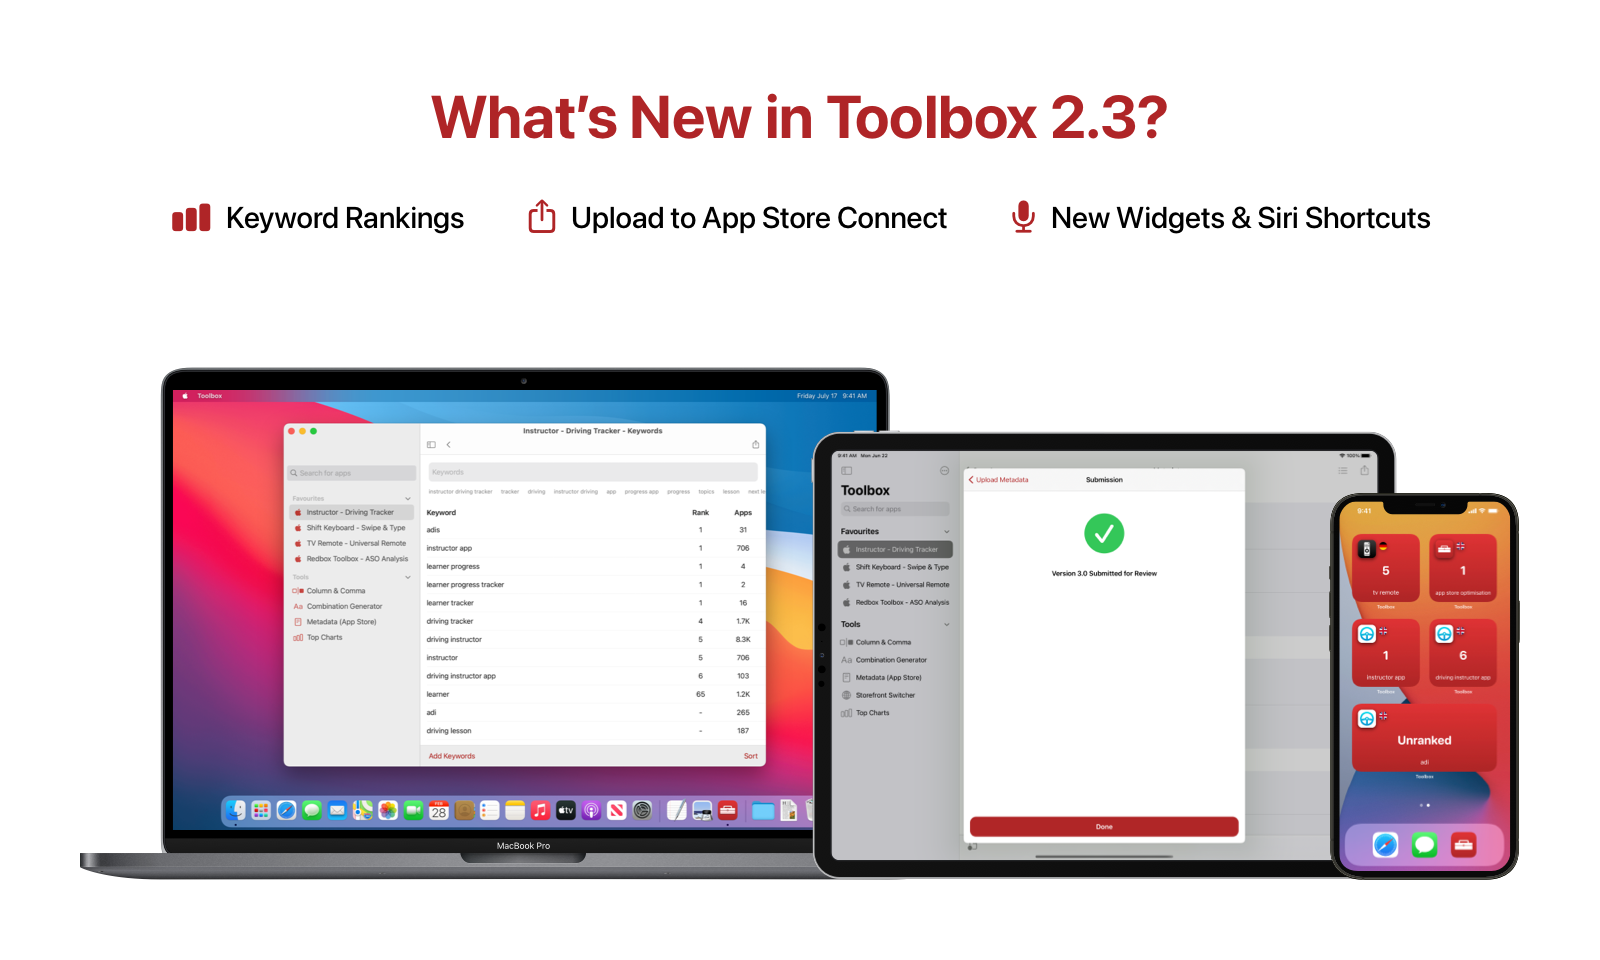 Image of Macbook, iPad and iPhone showcasing the Toolbox App